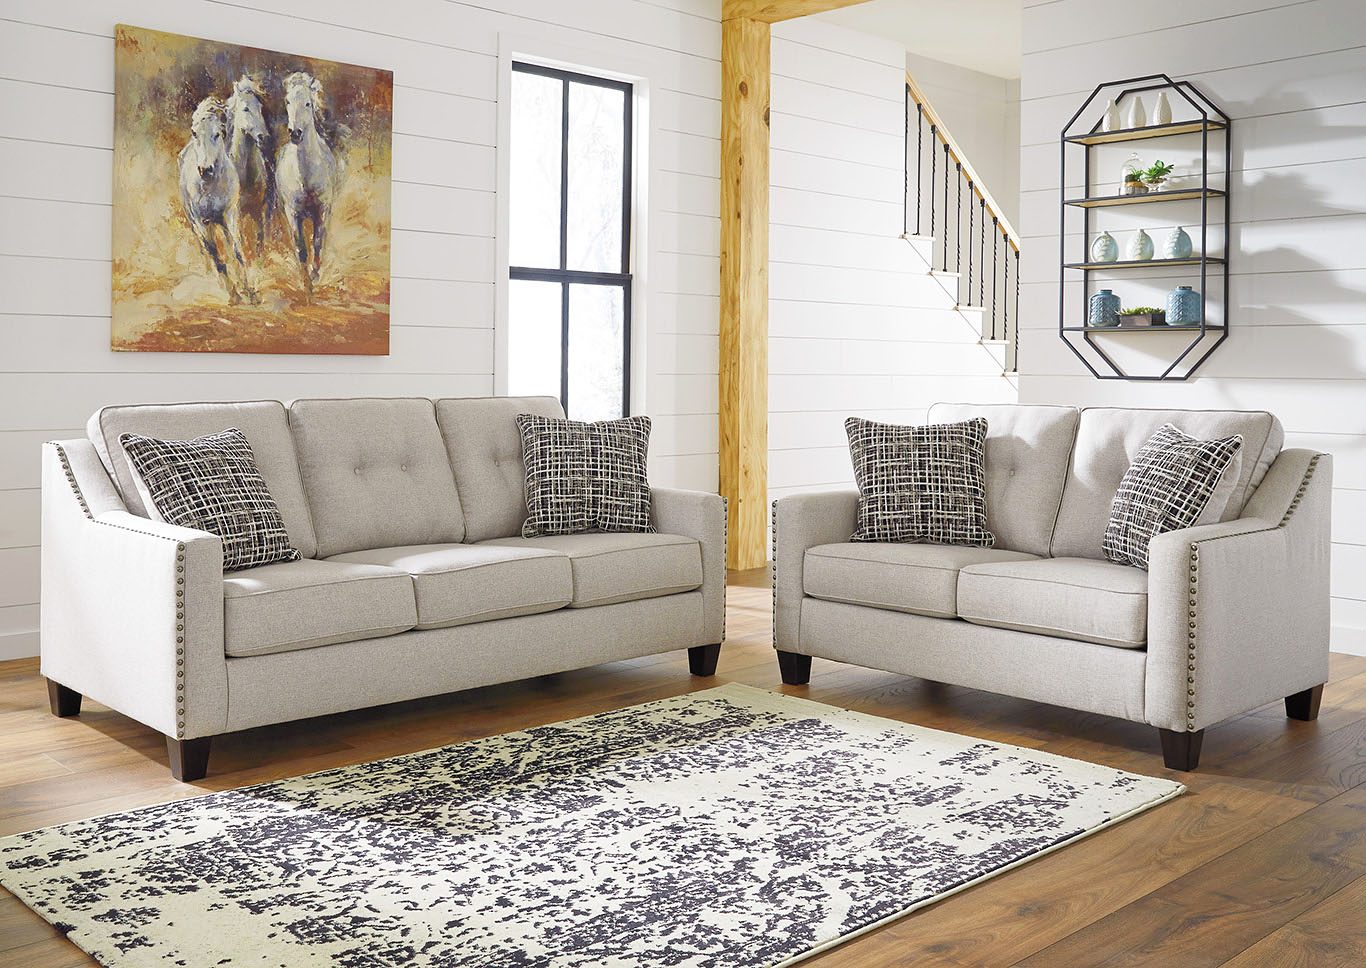 Marrero Fog Sofa & Loveseat,Signature Design By Ashley